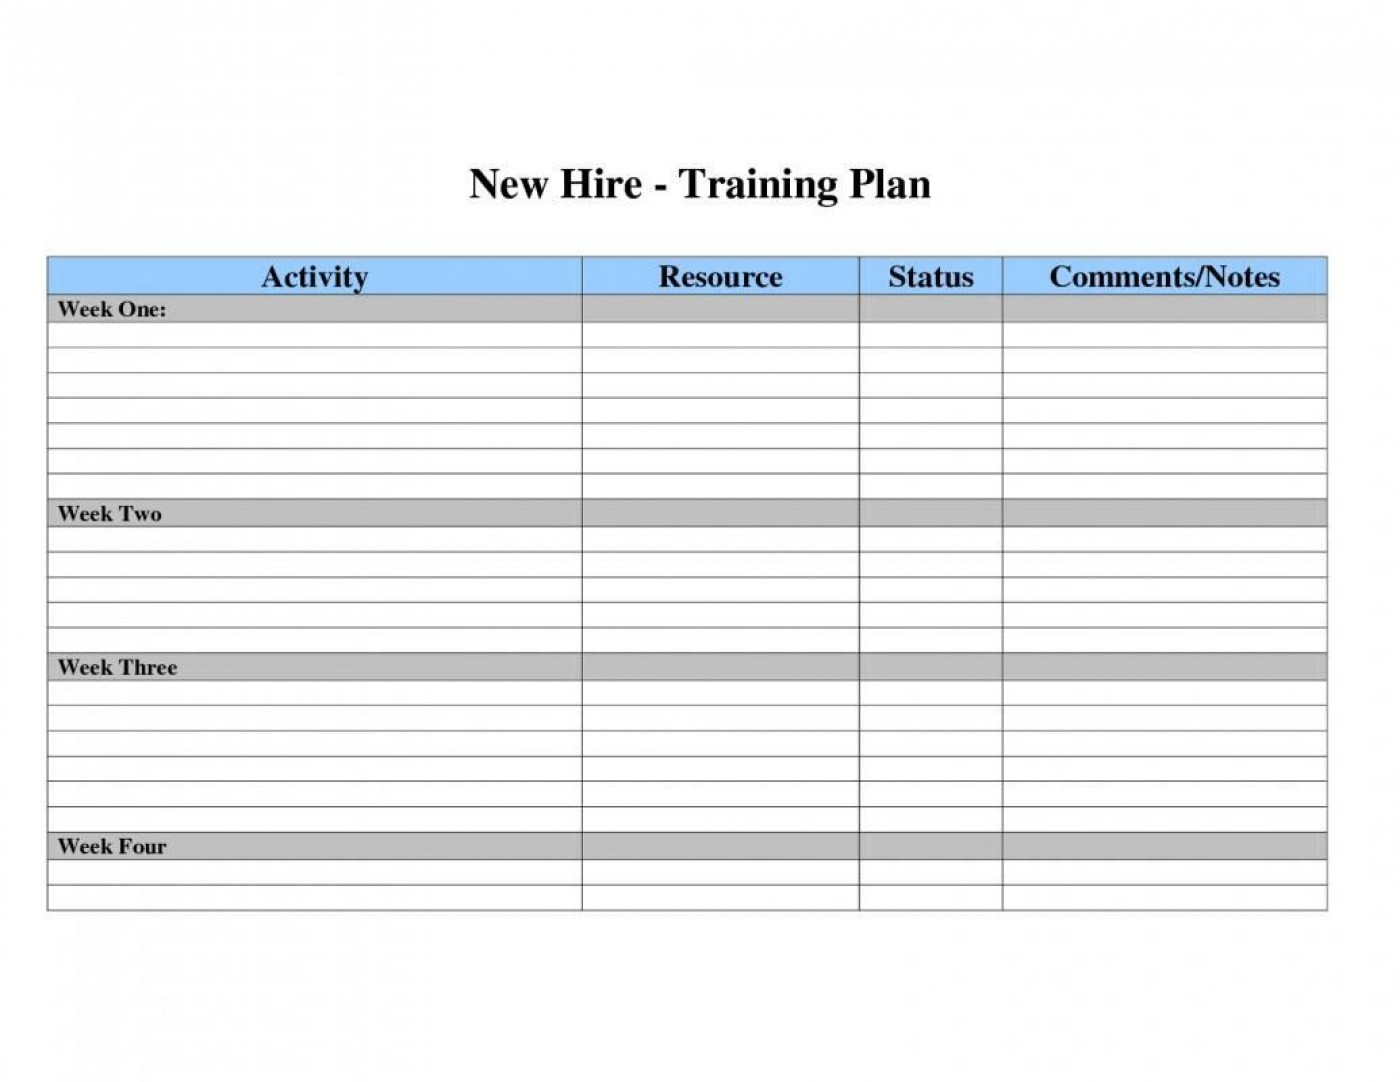 002 Dreaded Employee Training Plan Template Excel High Def  Free Download Staff Schedule1400